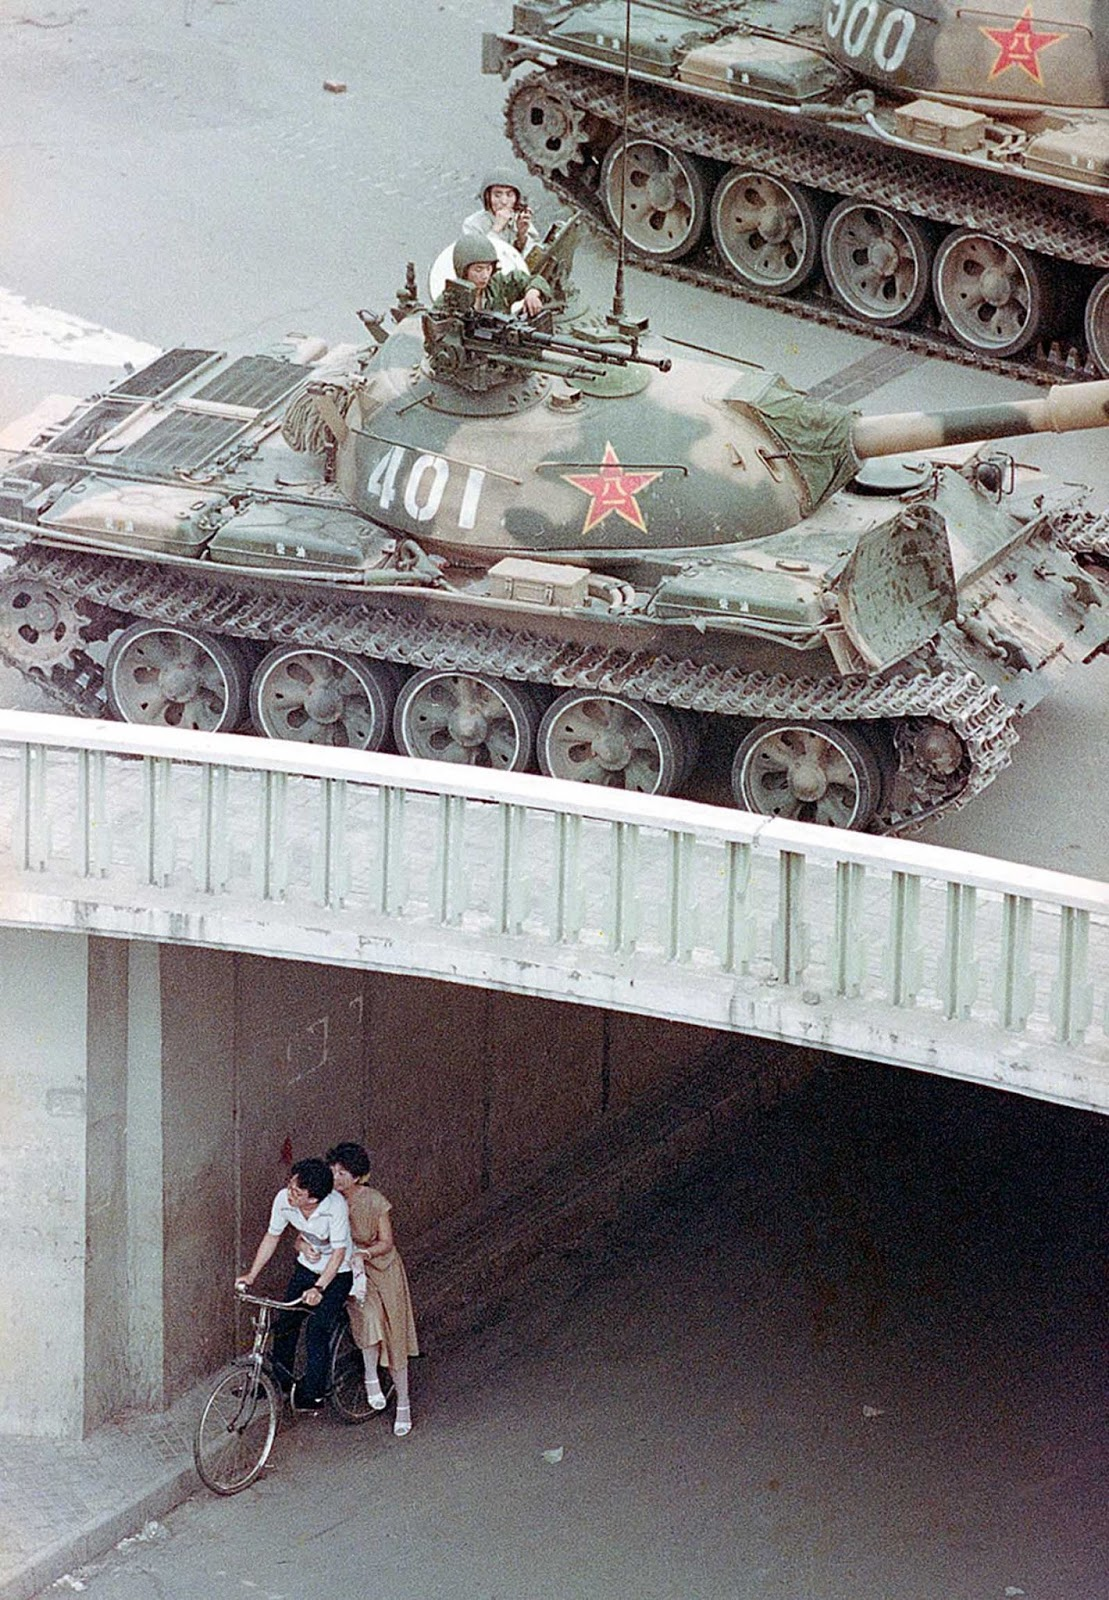 A Chinese couple on a bicycle take cover beneath an underpass as tanks deploy overhead in eastern Beijing, on June 5, 1989.